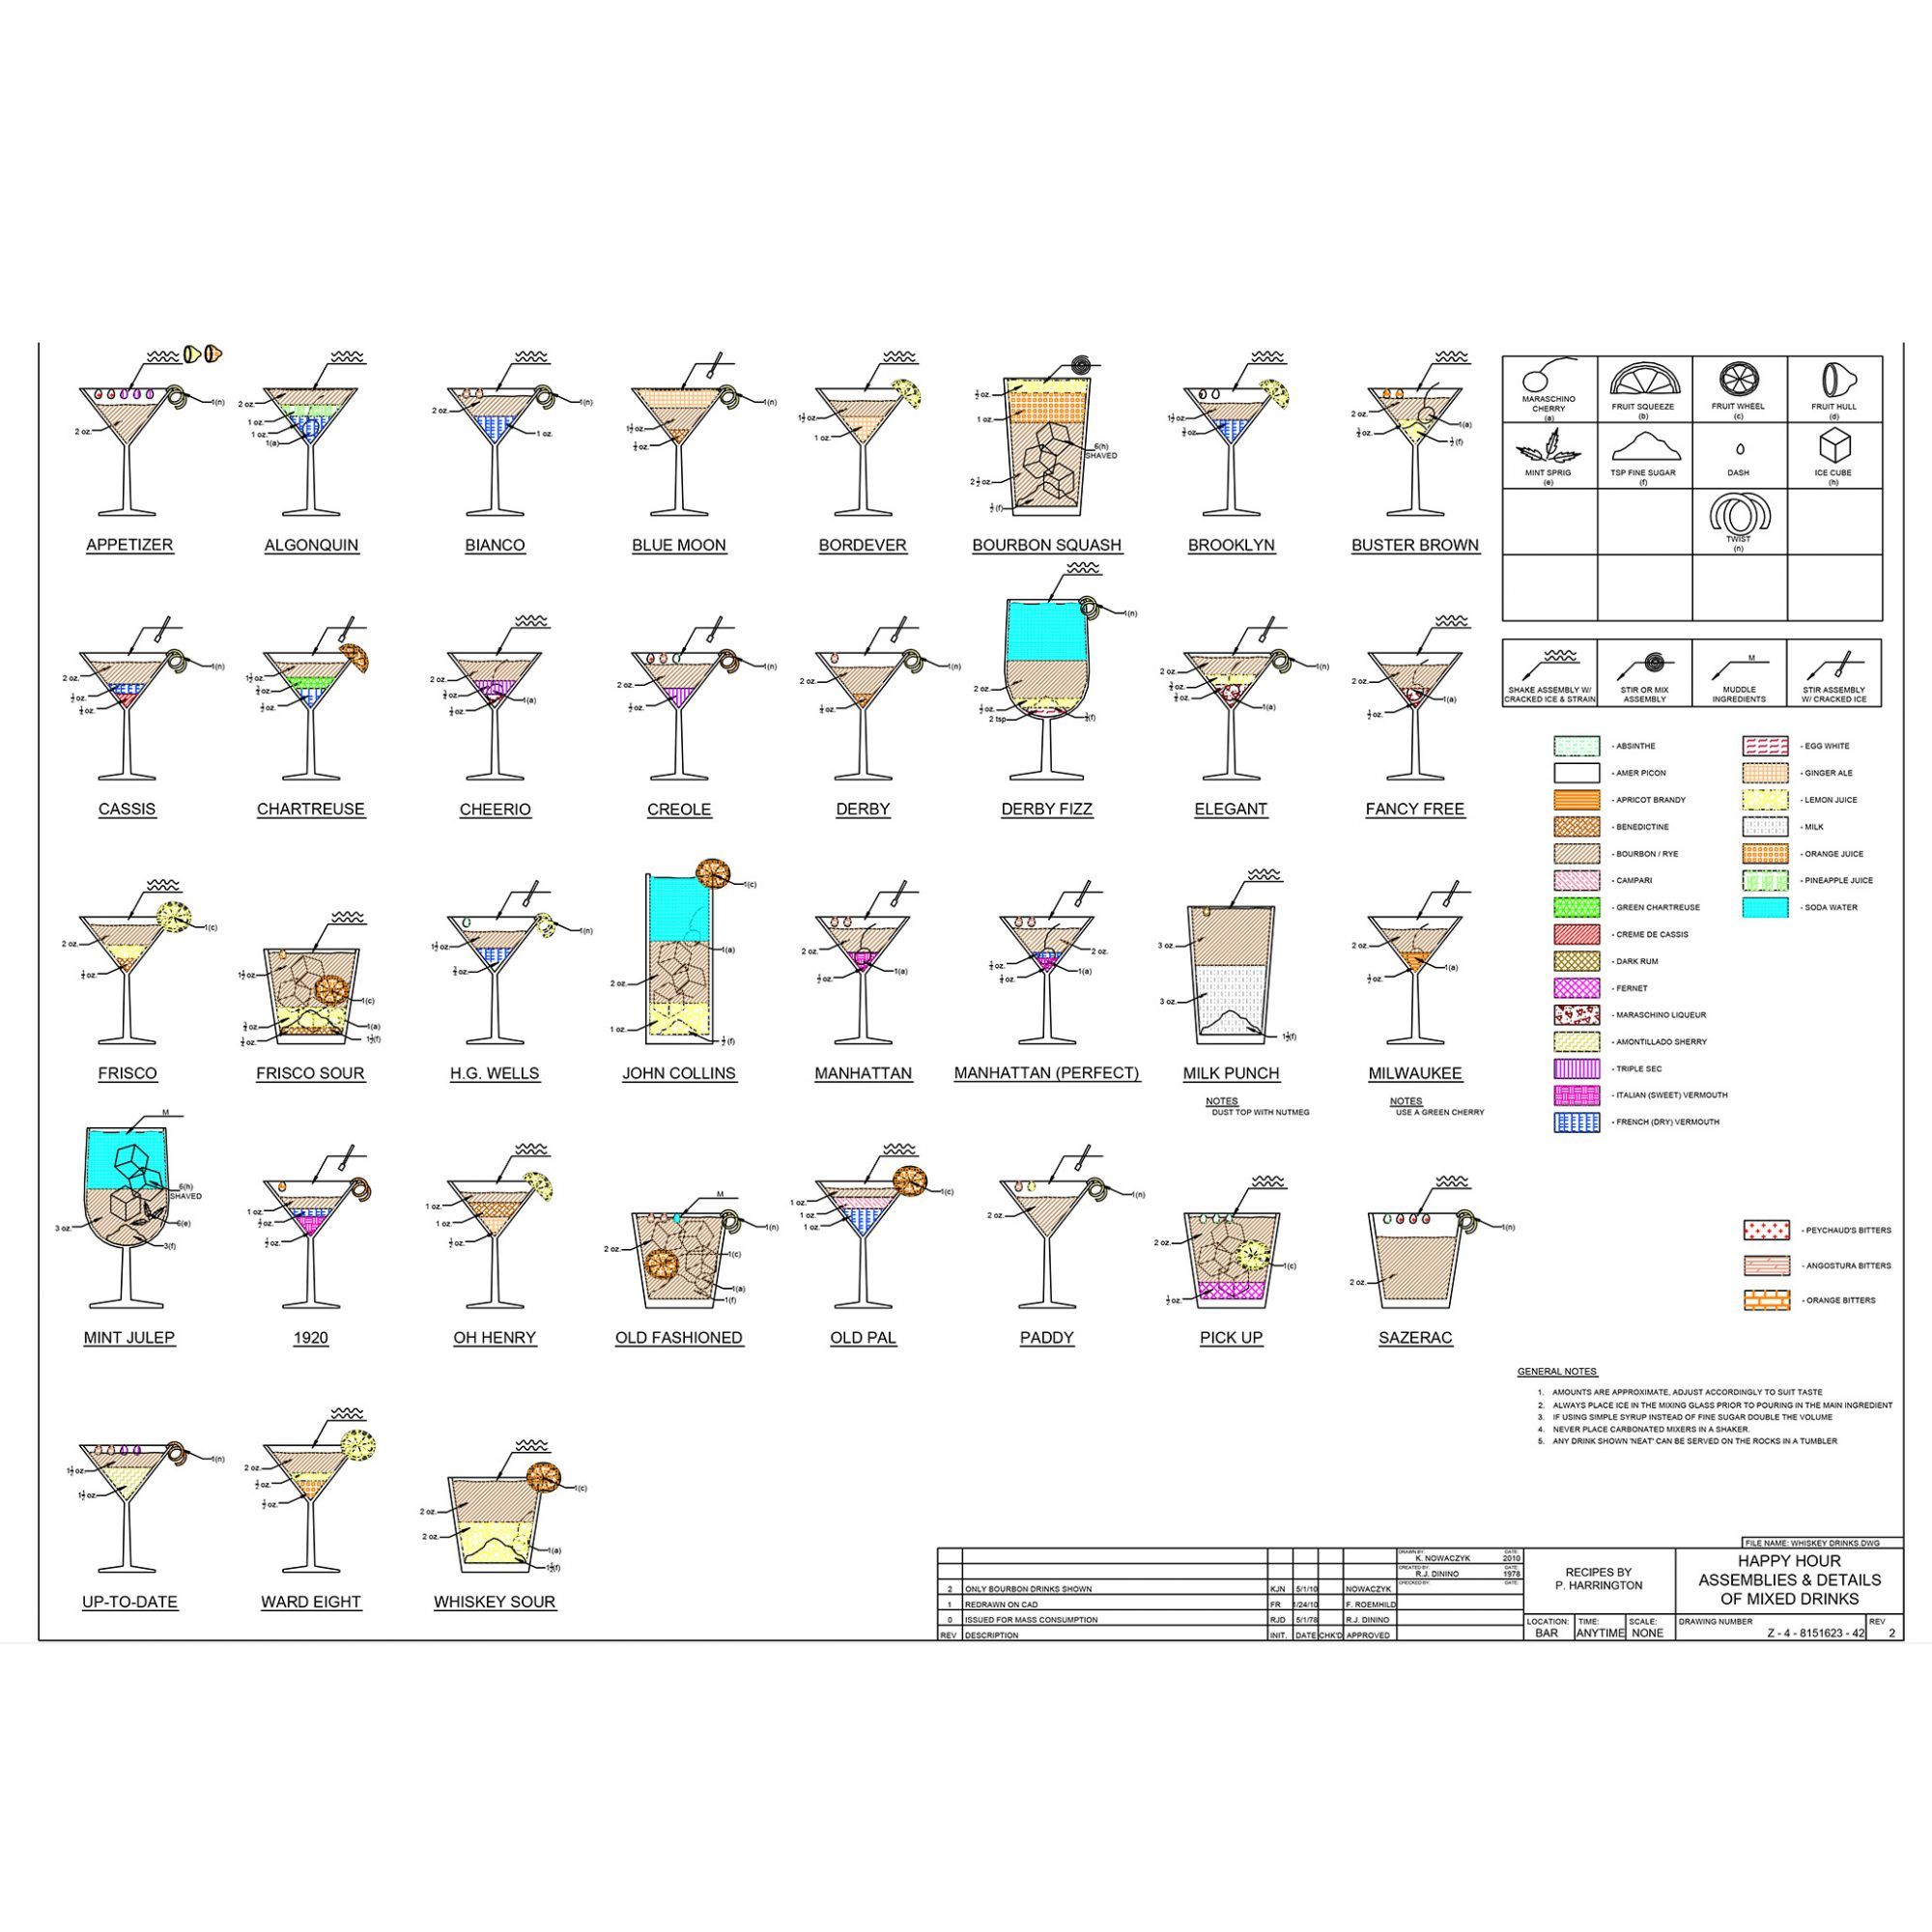 FWX WHISKEY DRINKS SCHEMATIC